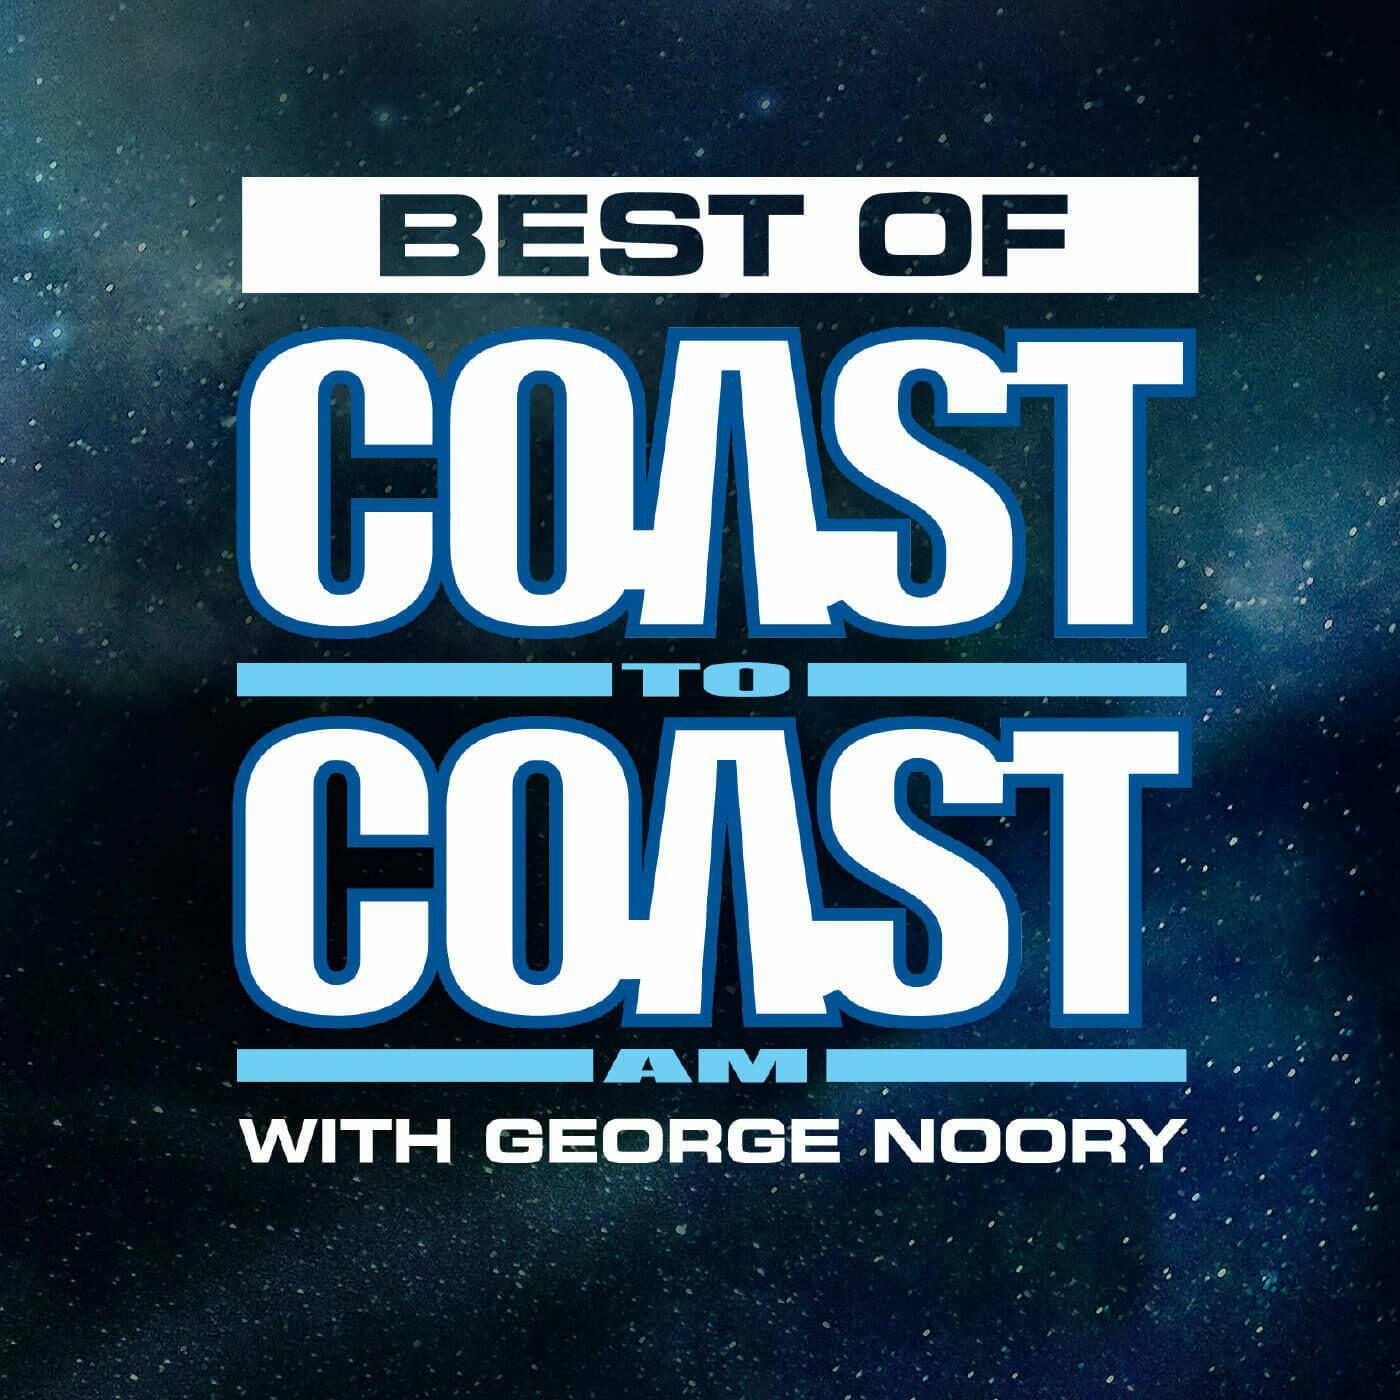 Listen to the The Best of Coast to Coast AM Episode - Dangers of 5G Technology - Best of Coast to Coast AM - 8/14/19 on iHeartRadio | iHeartRadio